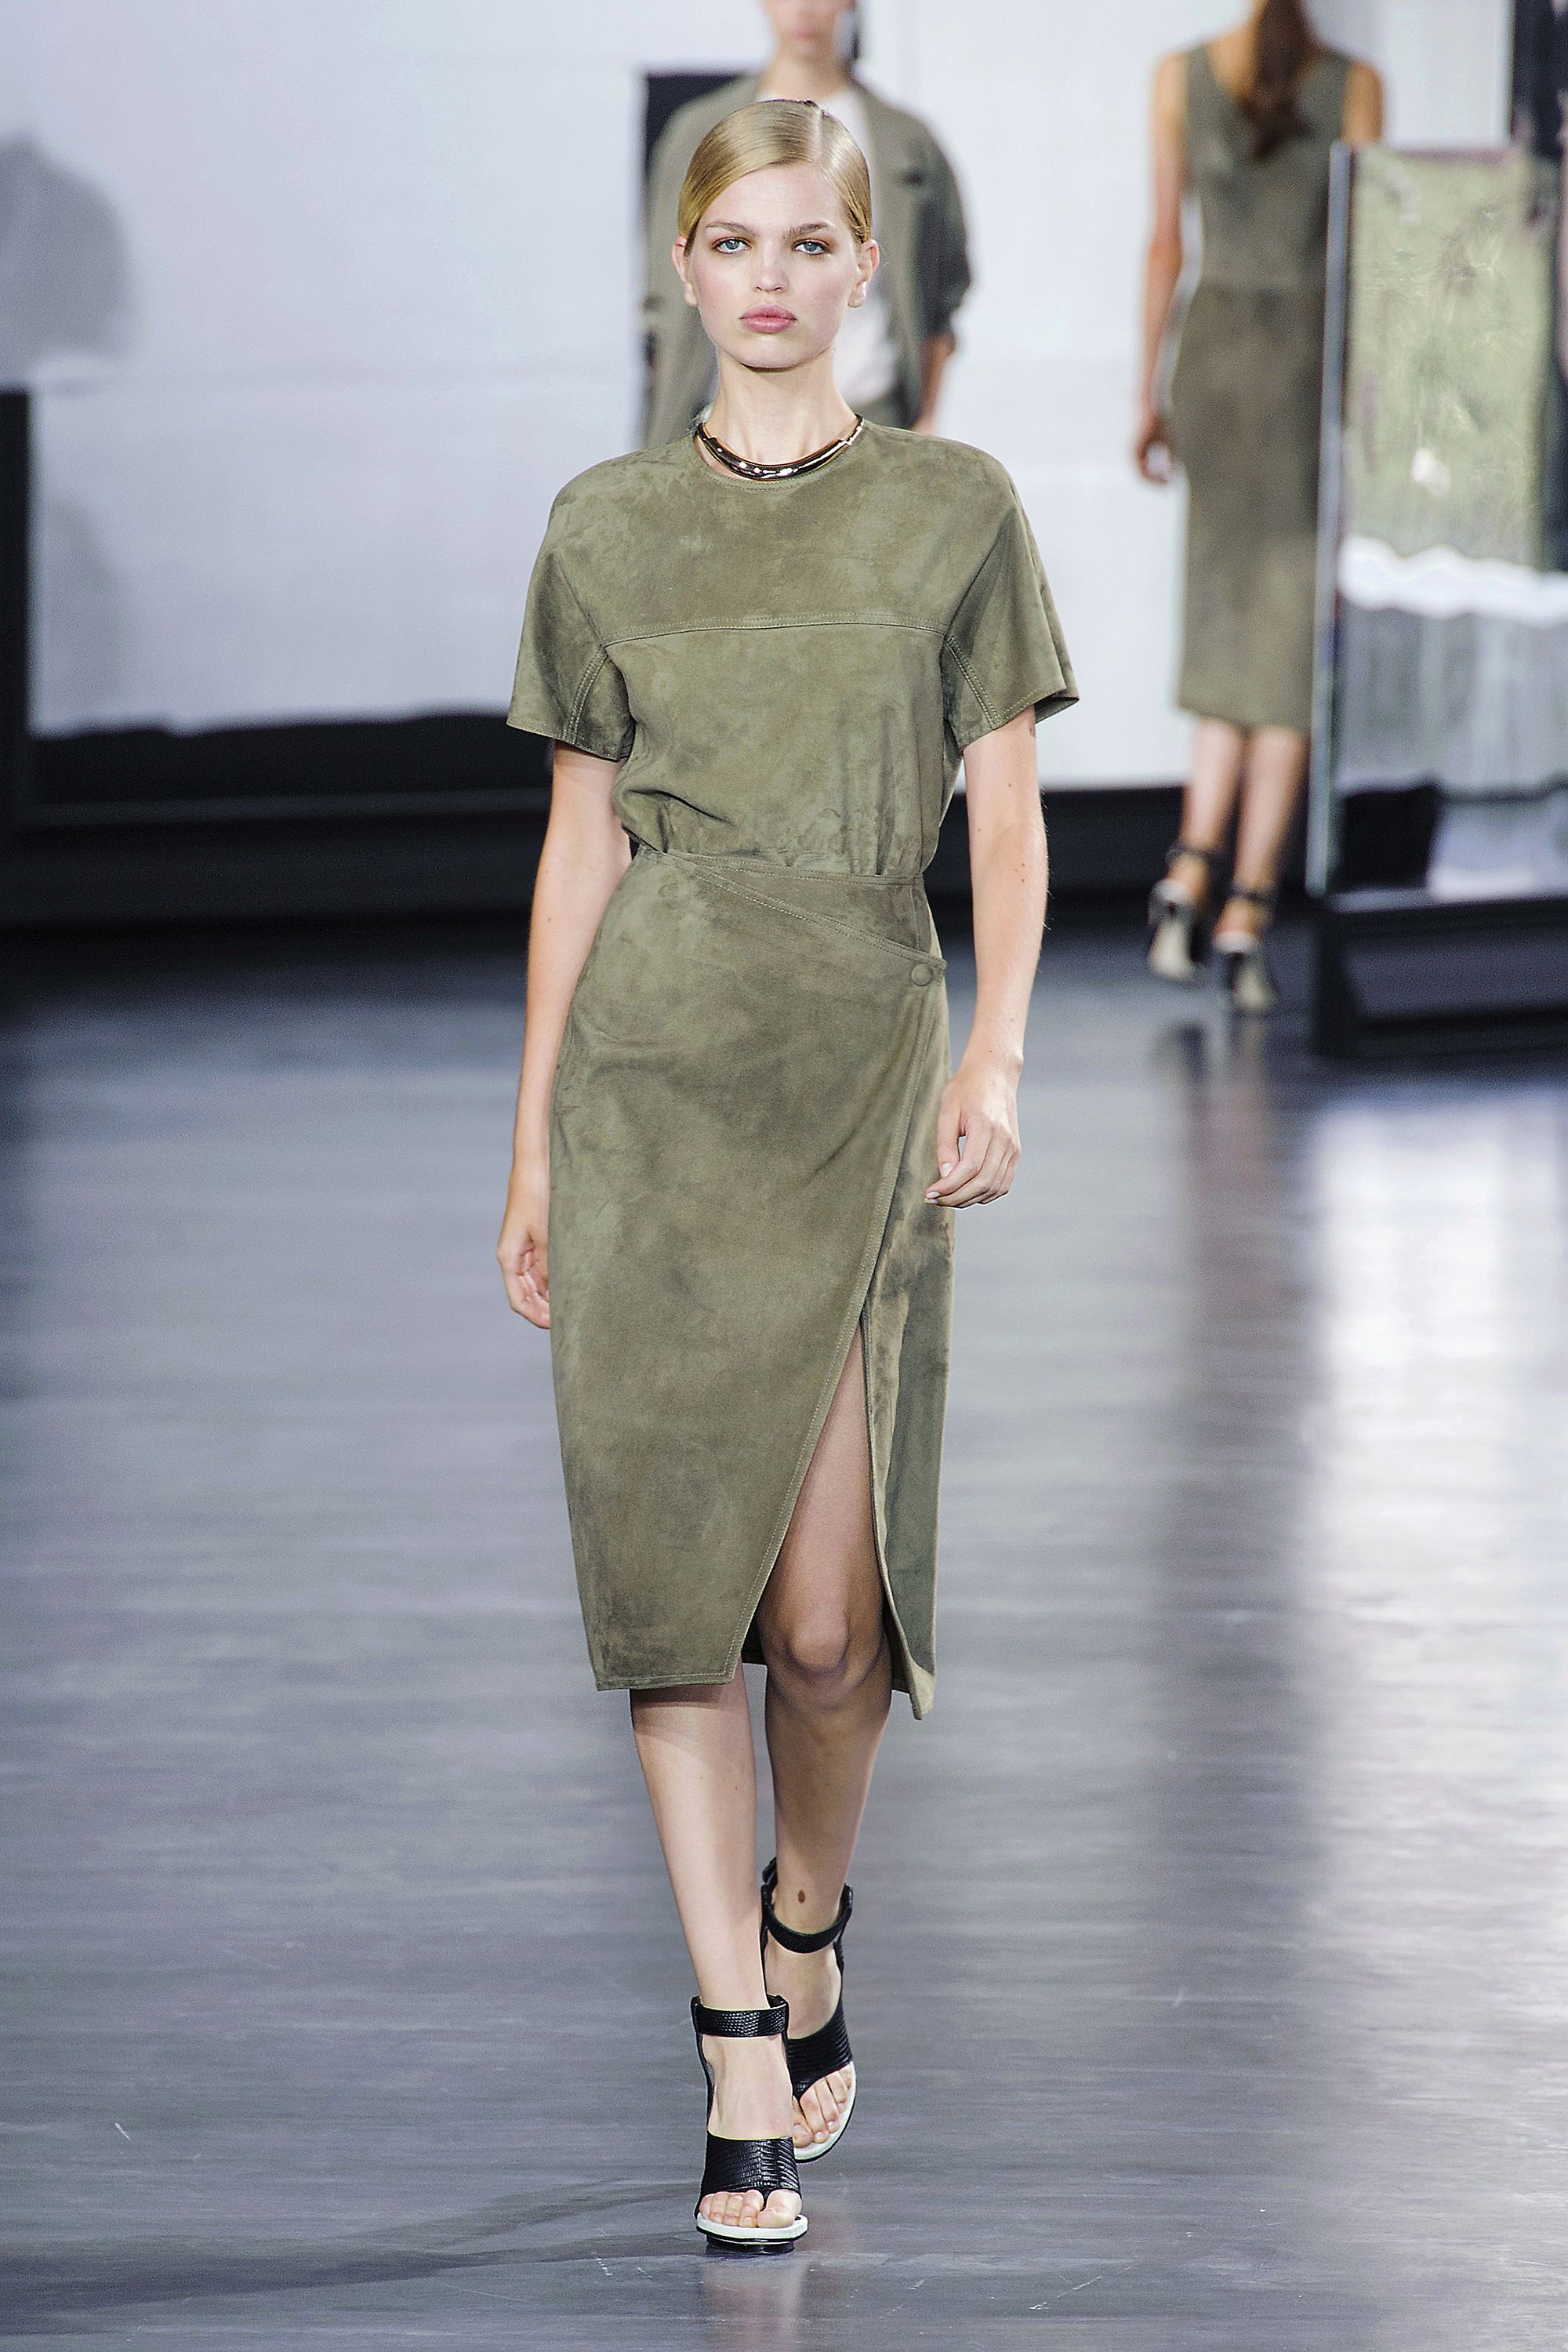 Attention! For spring, Marc Jacobs, Jason Wu (pictured left), Gucci and others are outfitting women with a modern twist on utilitarian style—with dresses in sleek satins and sumptuous suedes in shades of army green.   <em>Stylist Tip: Take this look into evening with a strappy shoe. </em>  <em>  </em>